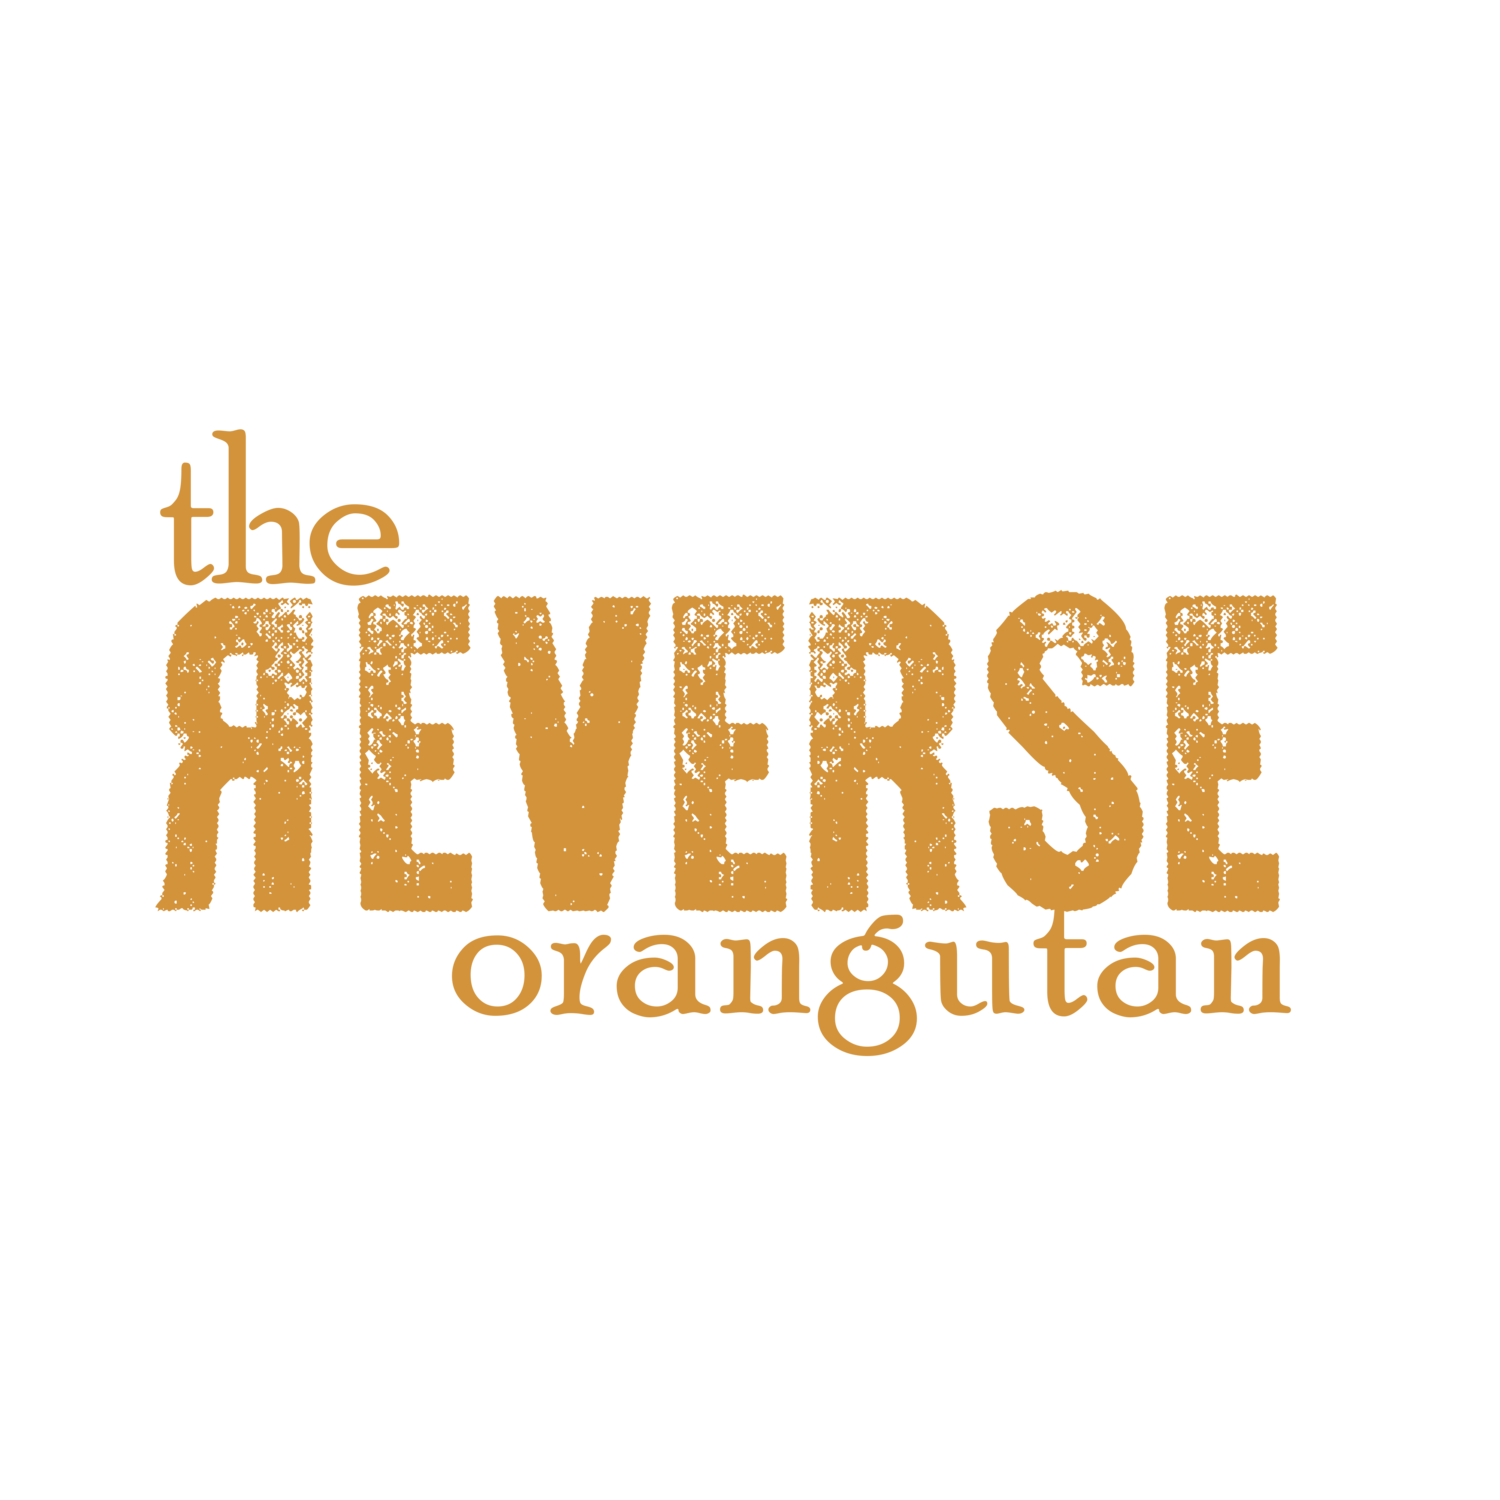 The Reverse Orangutan